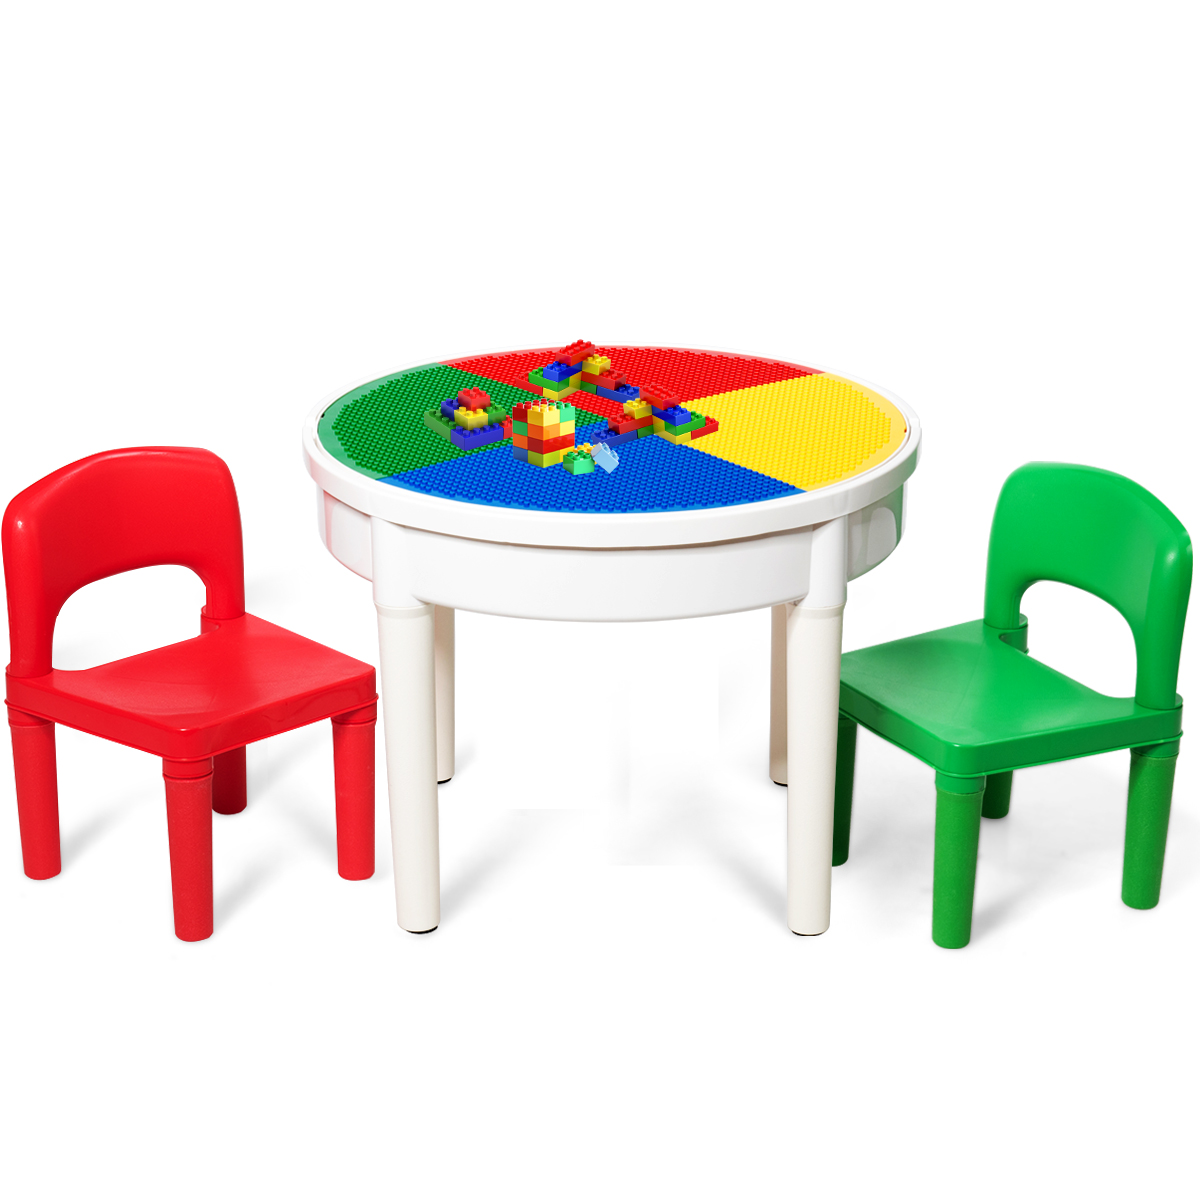 Costway 3 In 1 Kids Activity Table Set Water Craft Building Brick Table